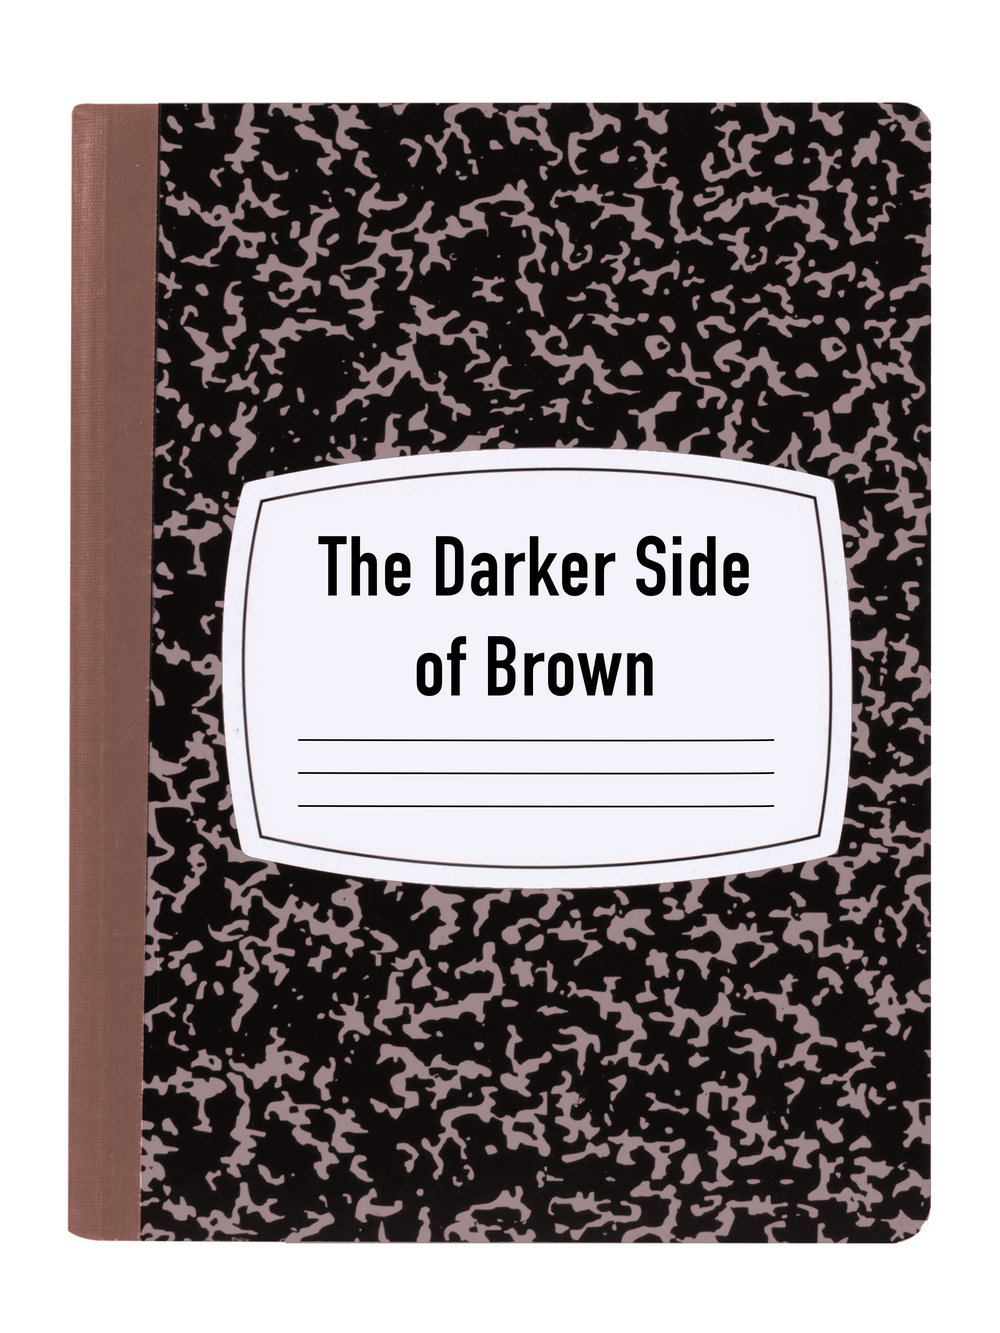 THE DARKER SIDE OF BROWN